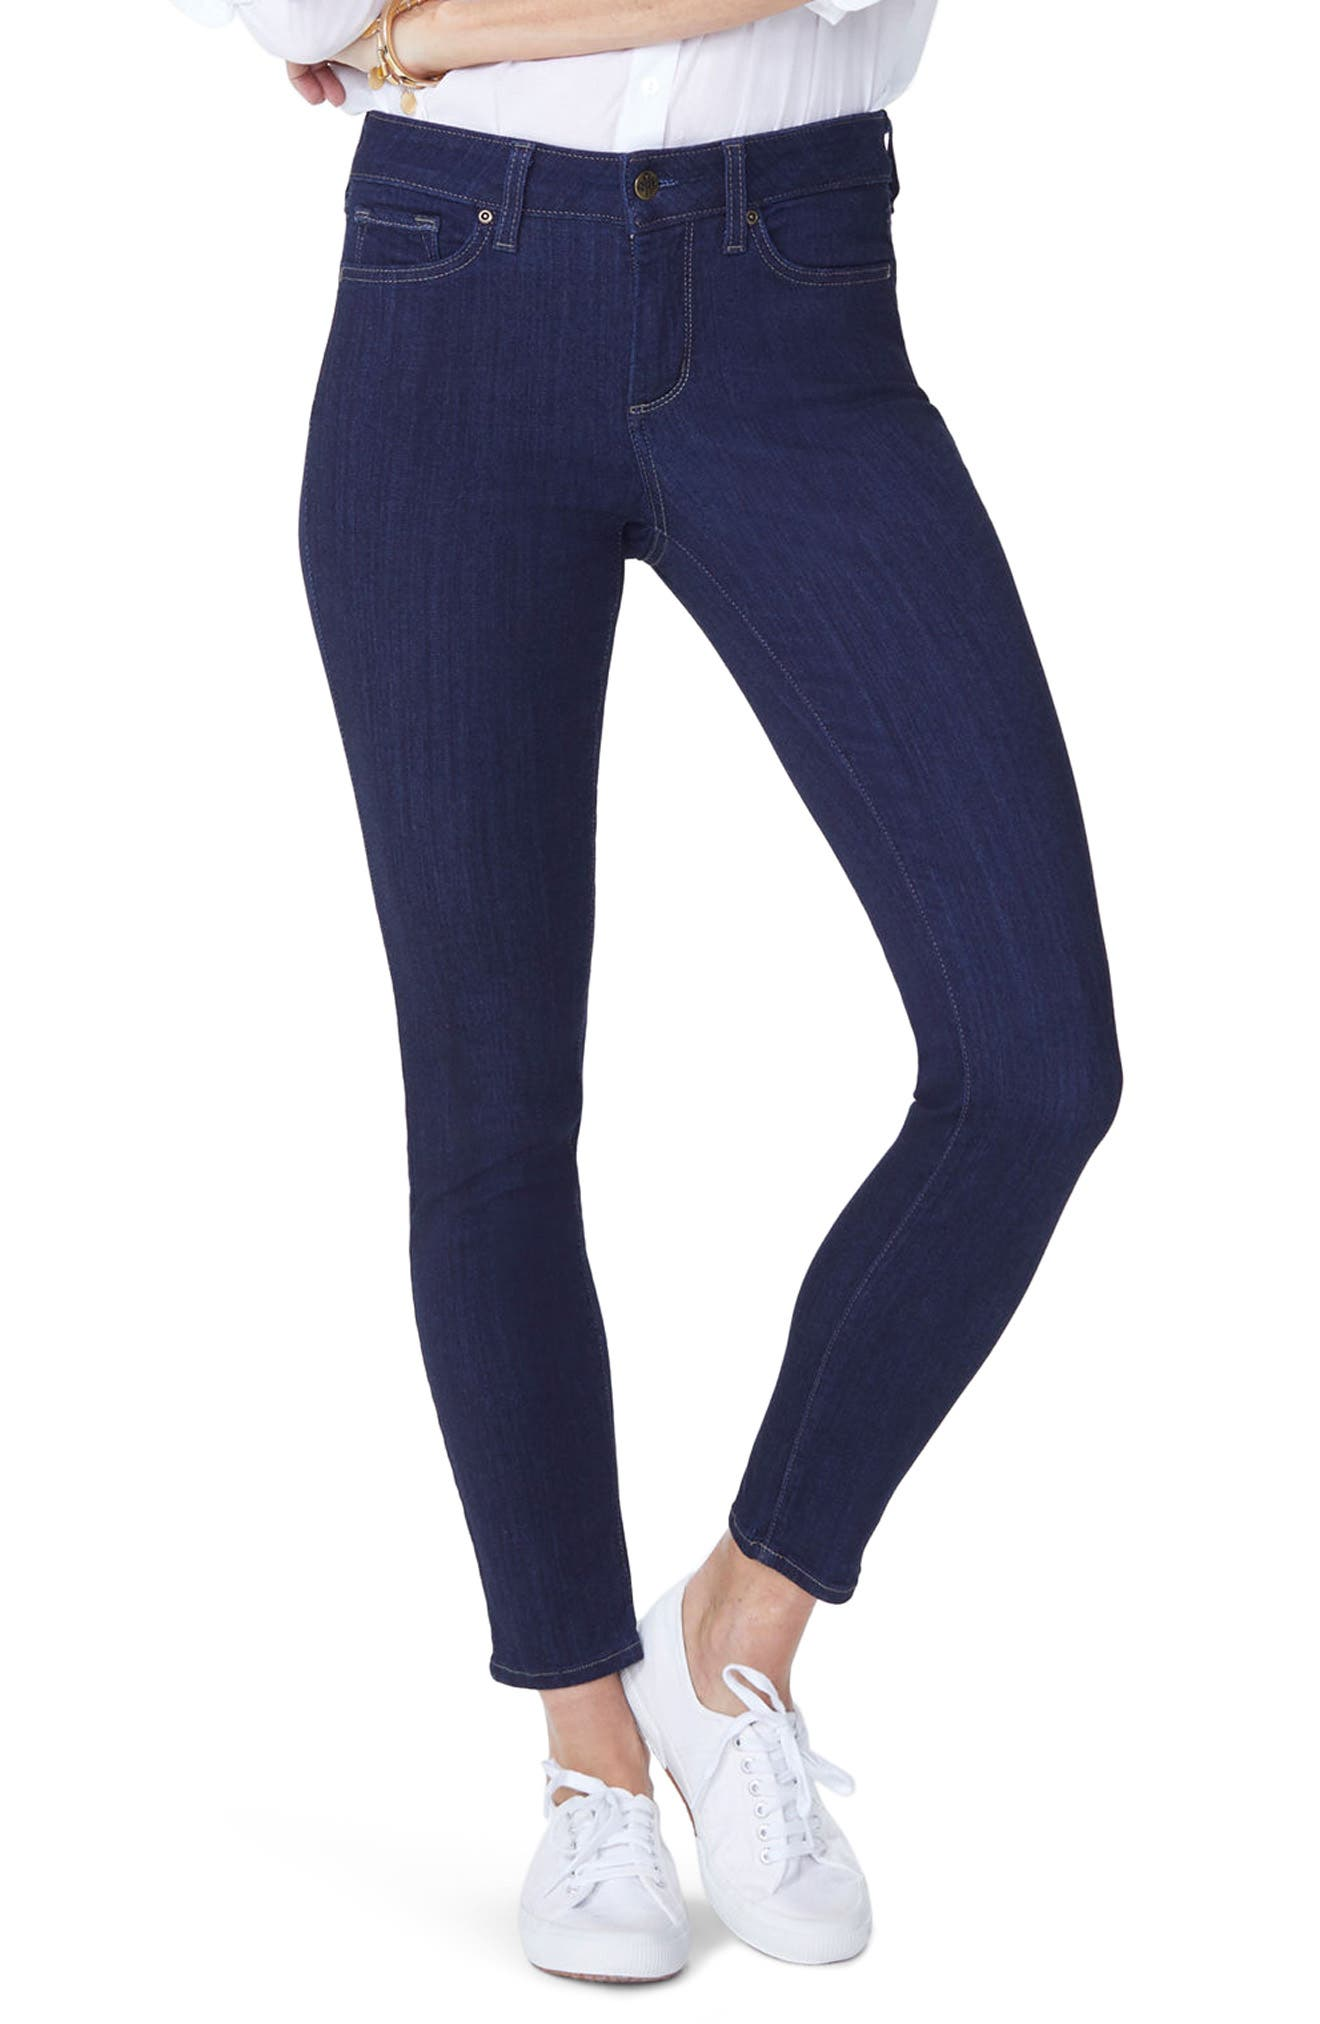 Ami Skinny Jeans,                         Main,                         color, 464